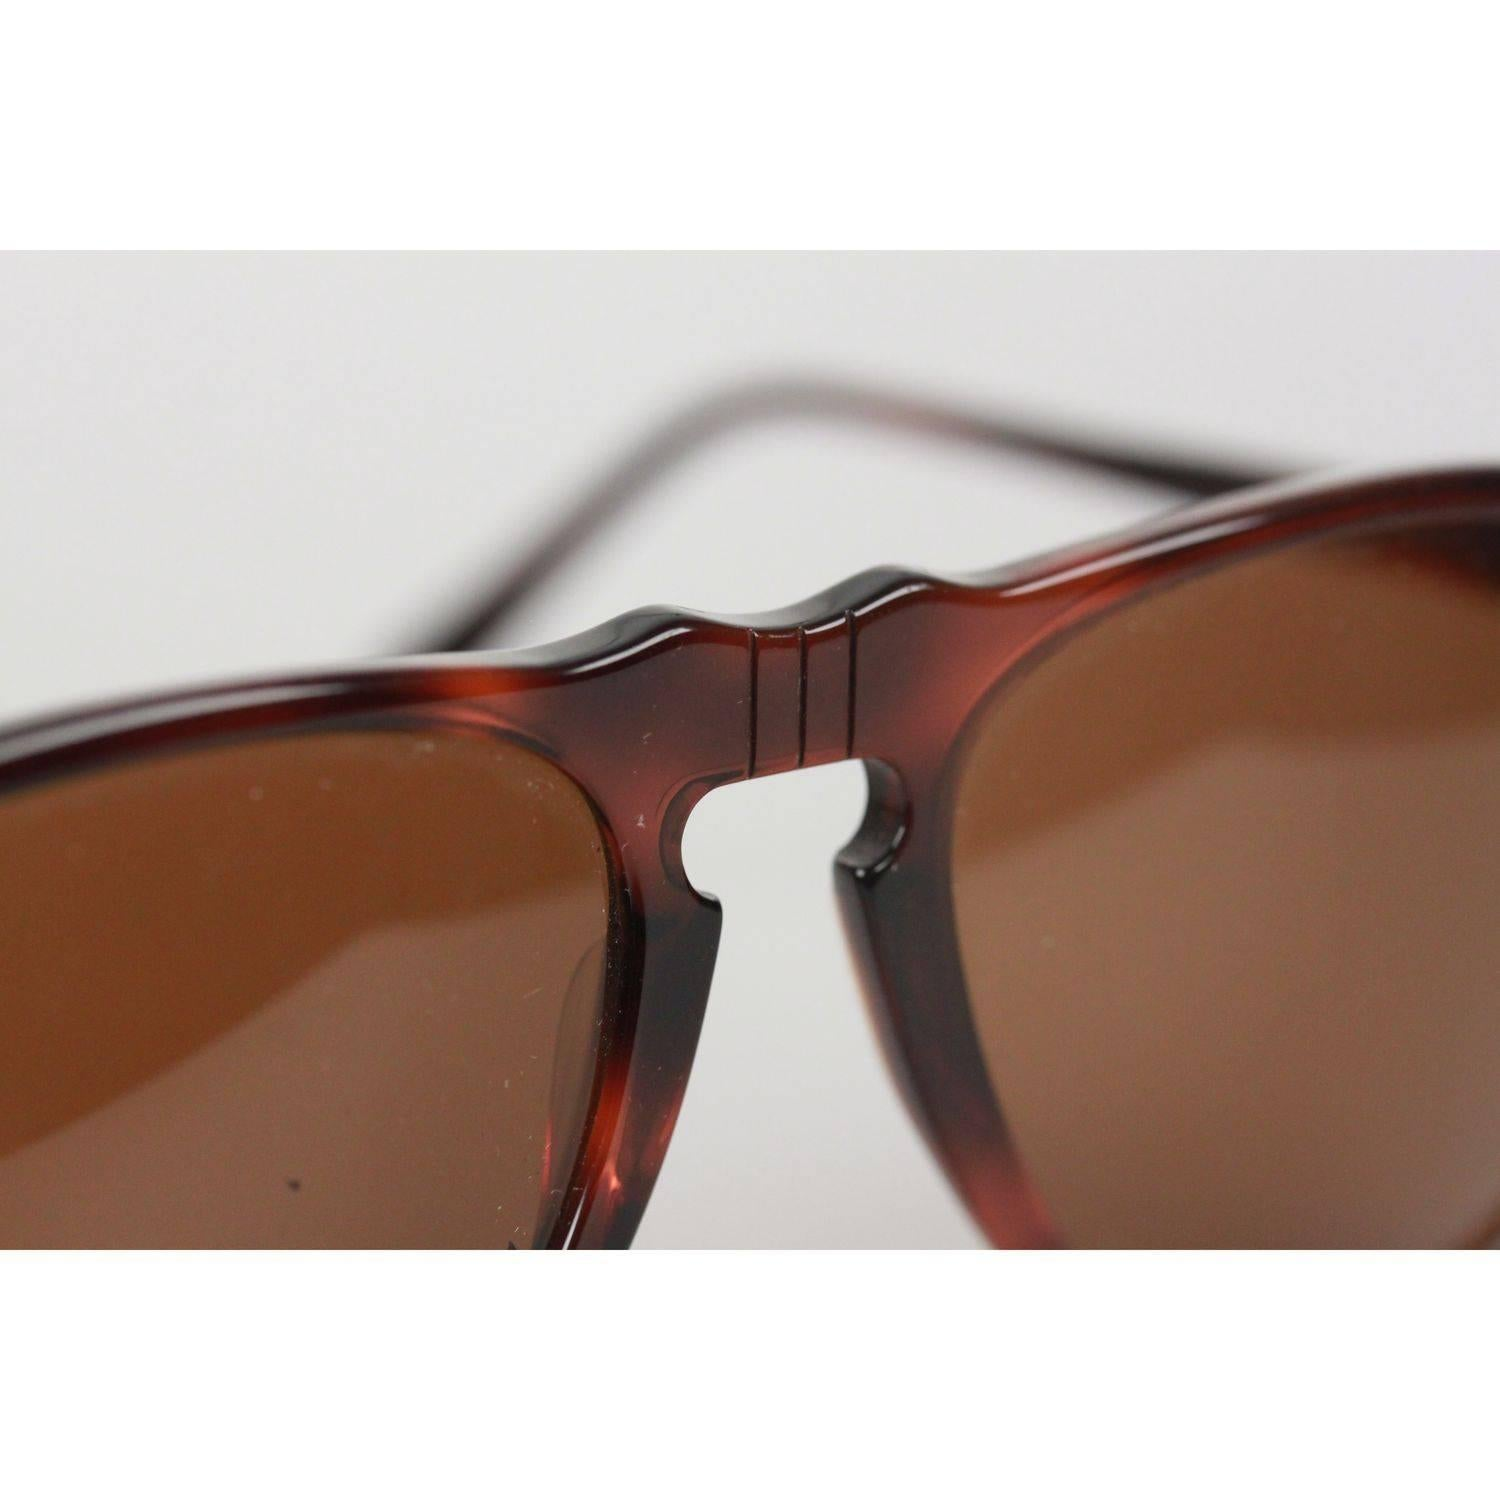 5035bc3838c PERSOL RATTI Vintage Brown Legendary SUNGLASSES 049 4 94 56mm NOS For Sale  at 1stdibs